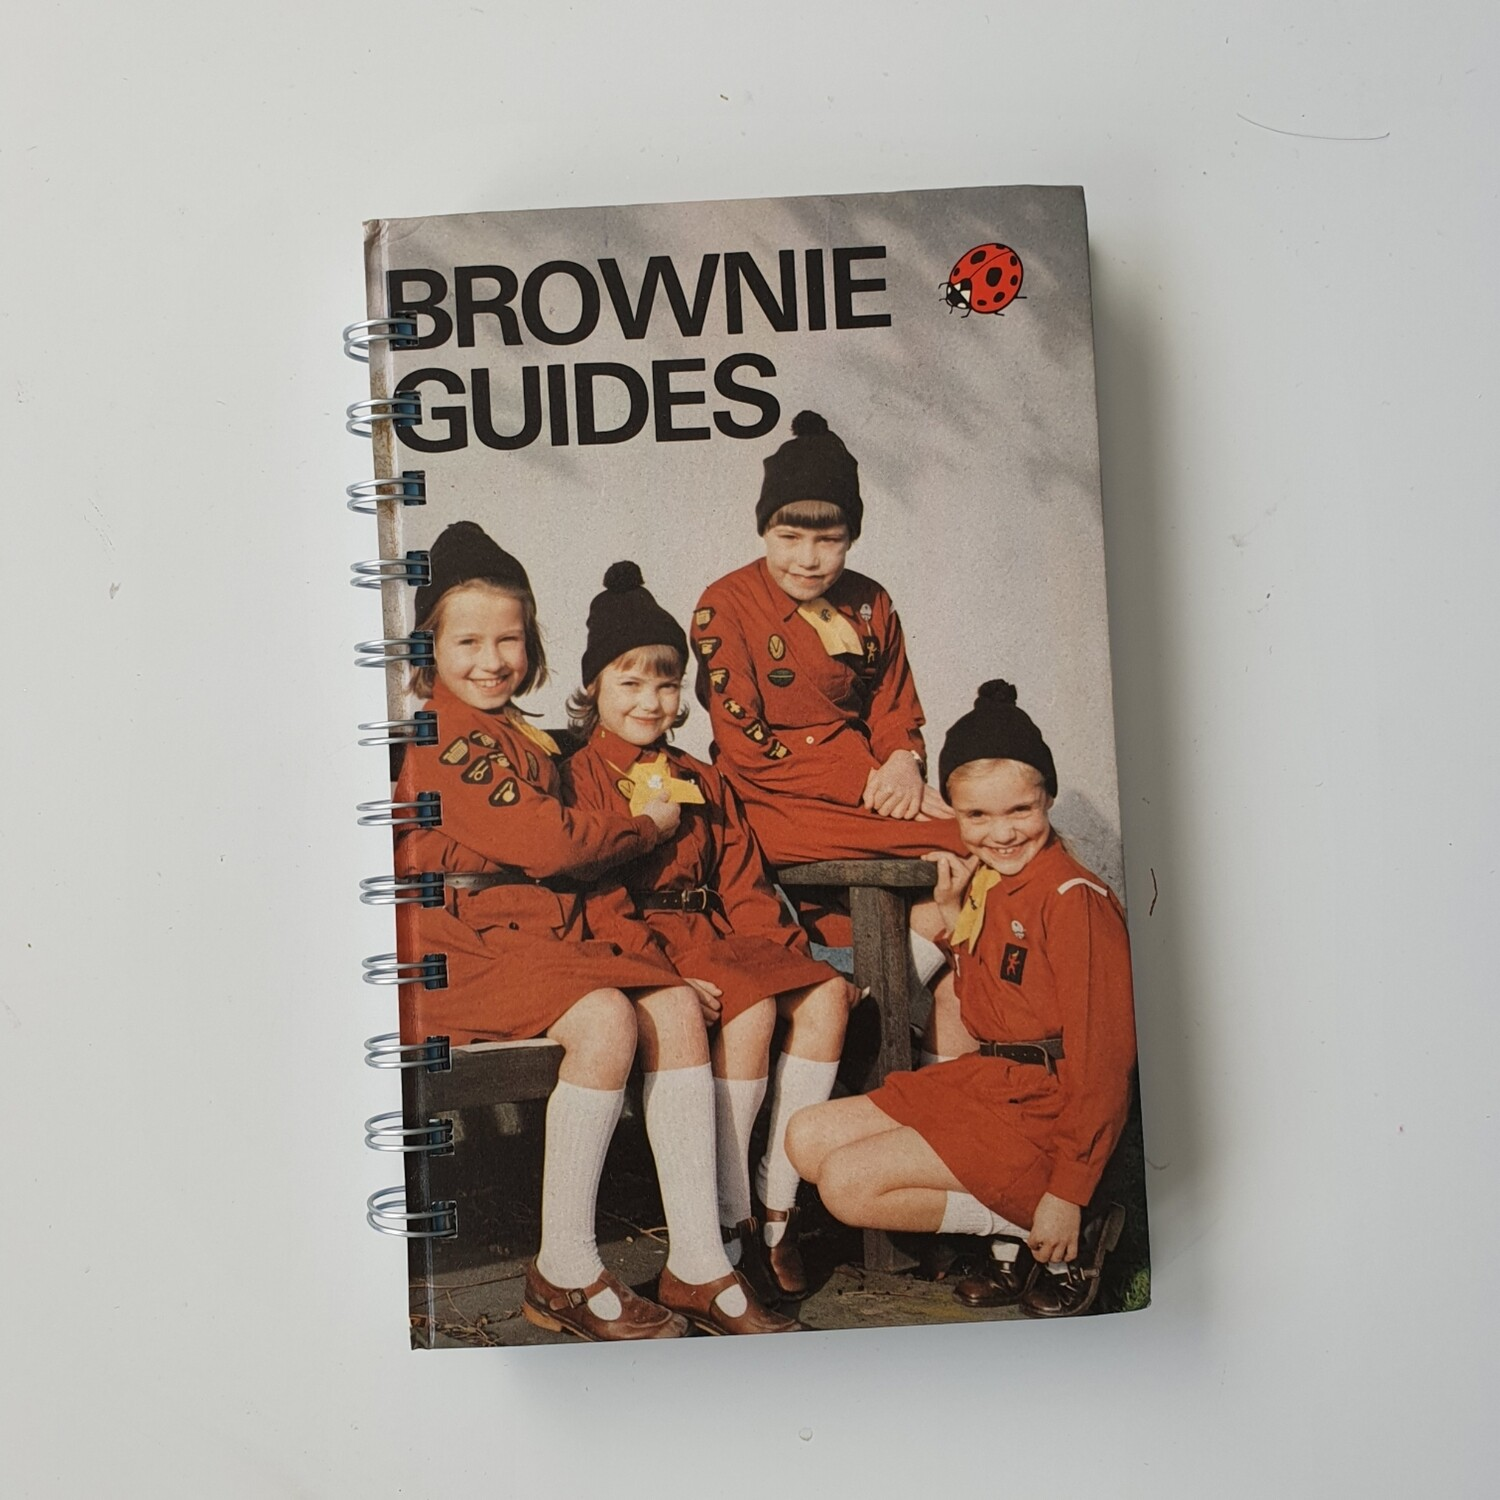 Brownie Guides Notebook